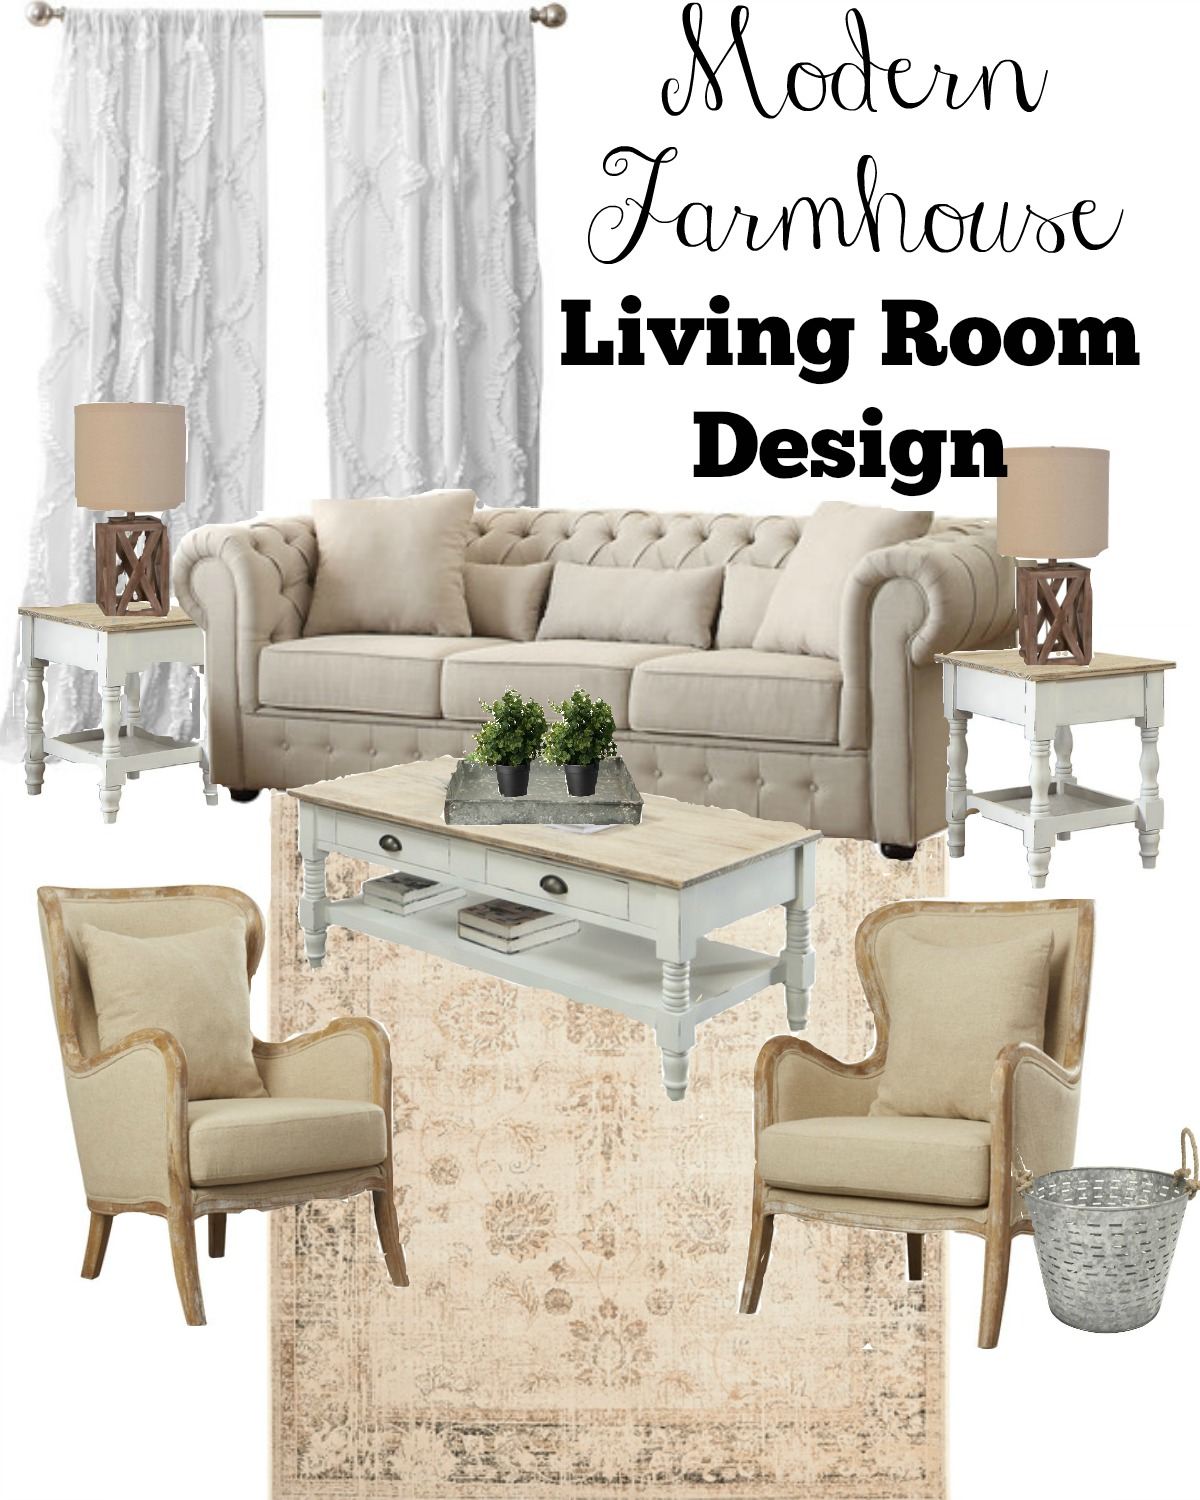 Farmhouse Living Room Ideas.  3 Key Tips for a Farmhouse Style Living Room